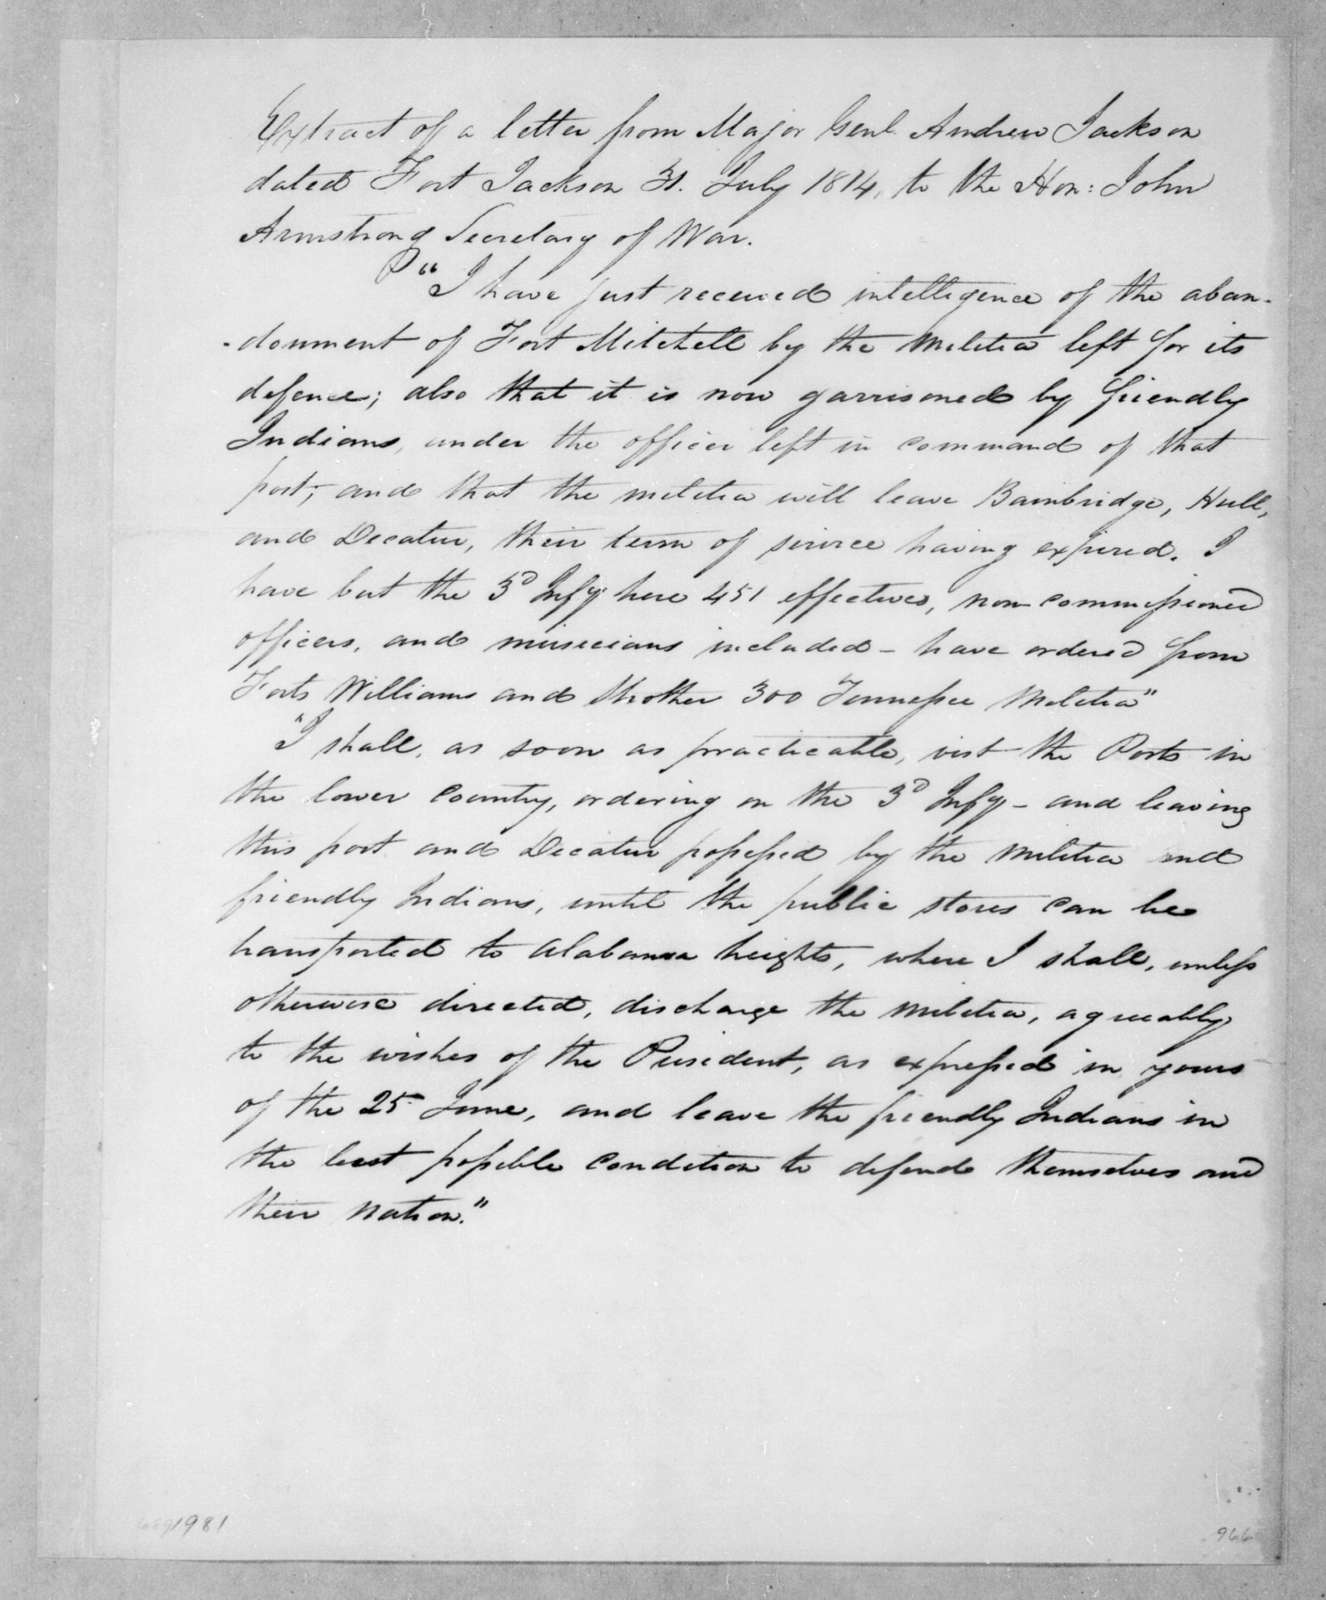 Andrew Jackson to John Armstrong, July 31, 1814